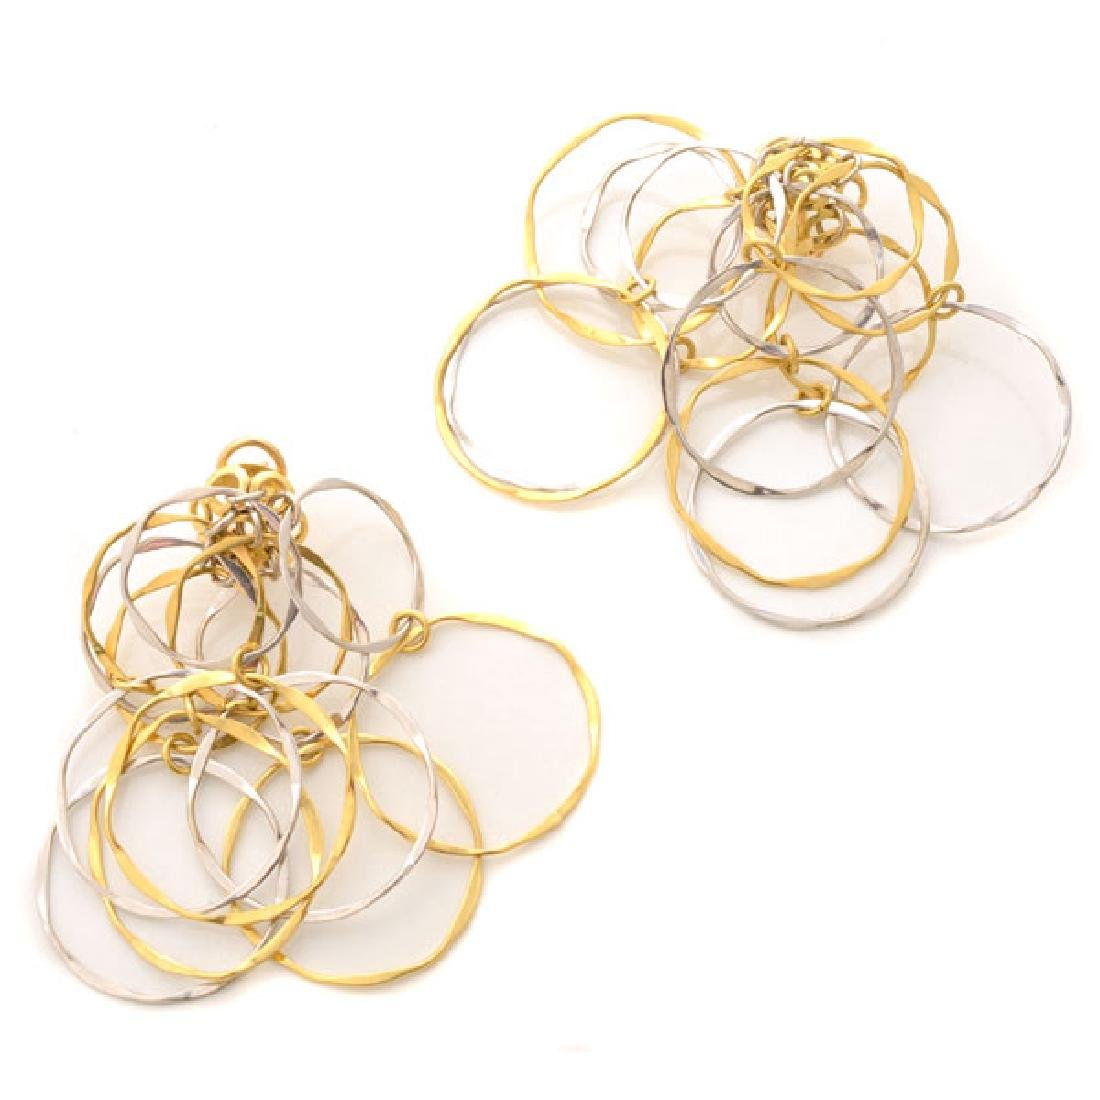 Pair of 14k Yellow and White Gold Earrings.